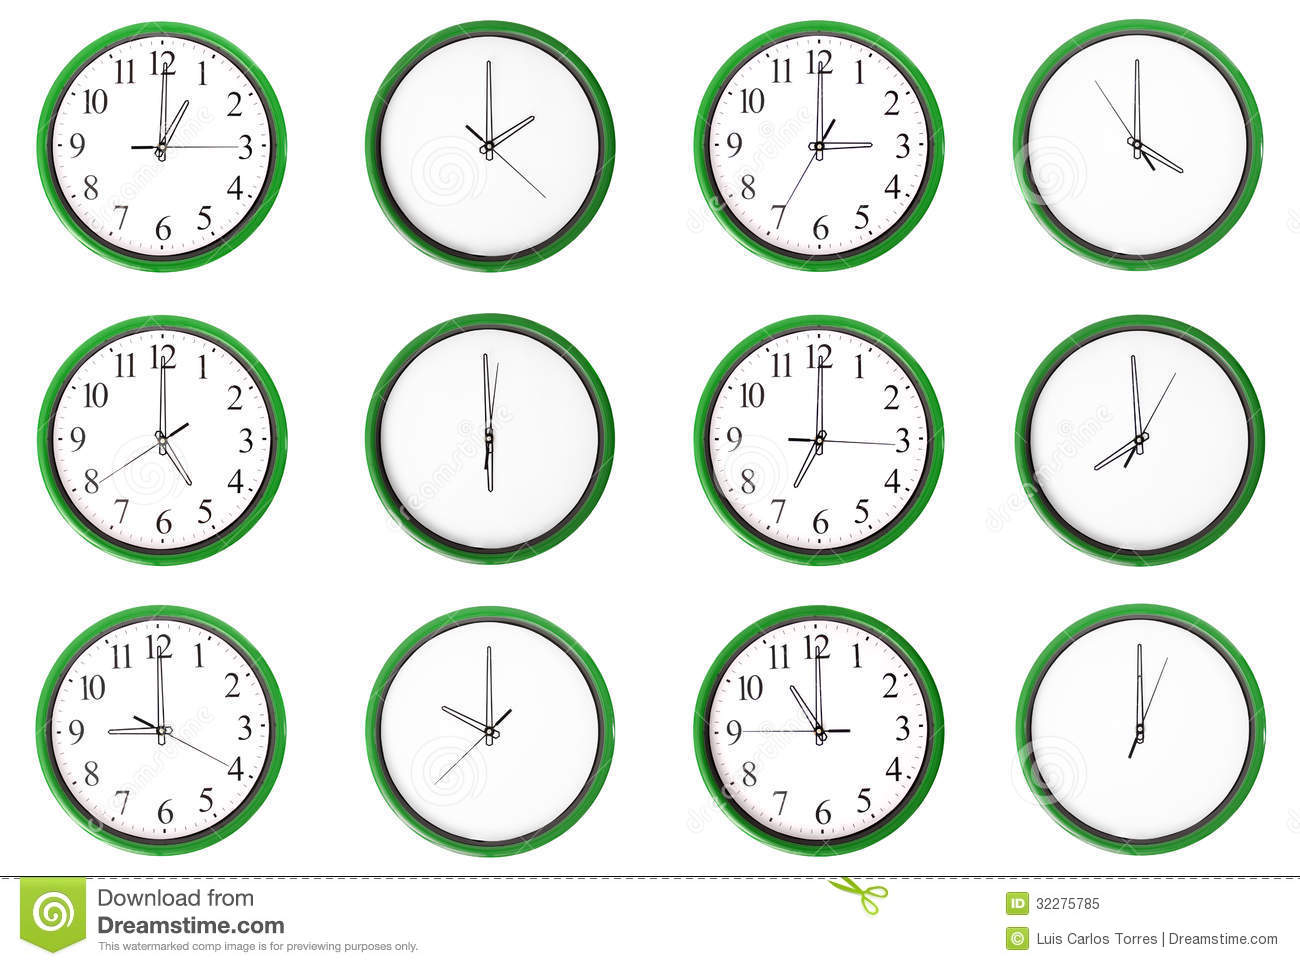 Worksheet Learning Time learning time odd numbers green royalty free stock photo green